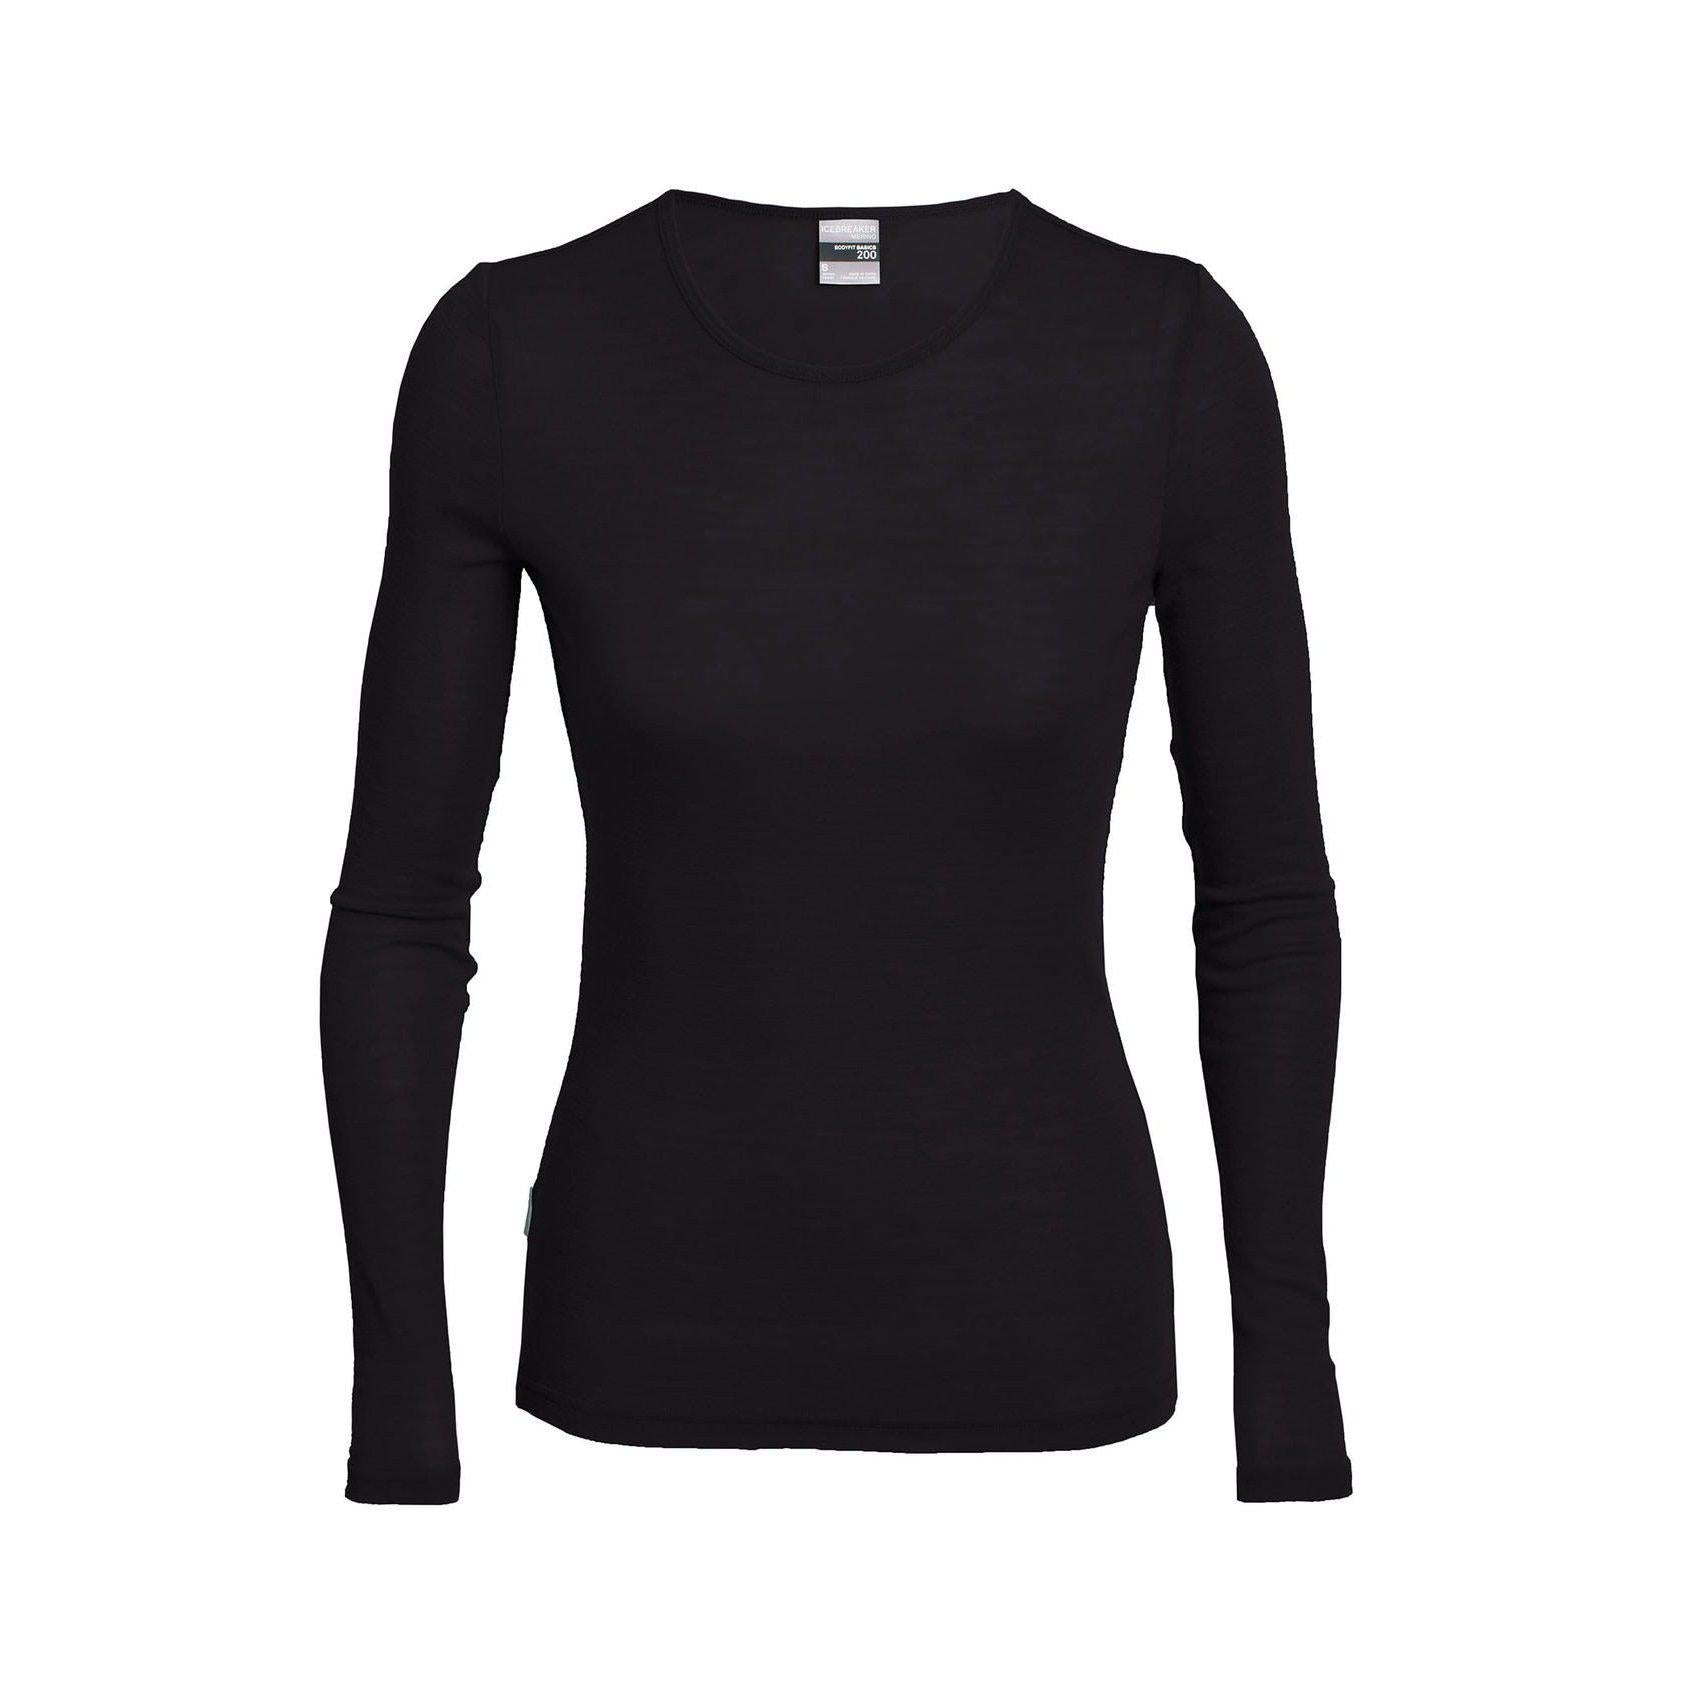 Icebreaker Women's Everyday Long Sleeve Crew Top